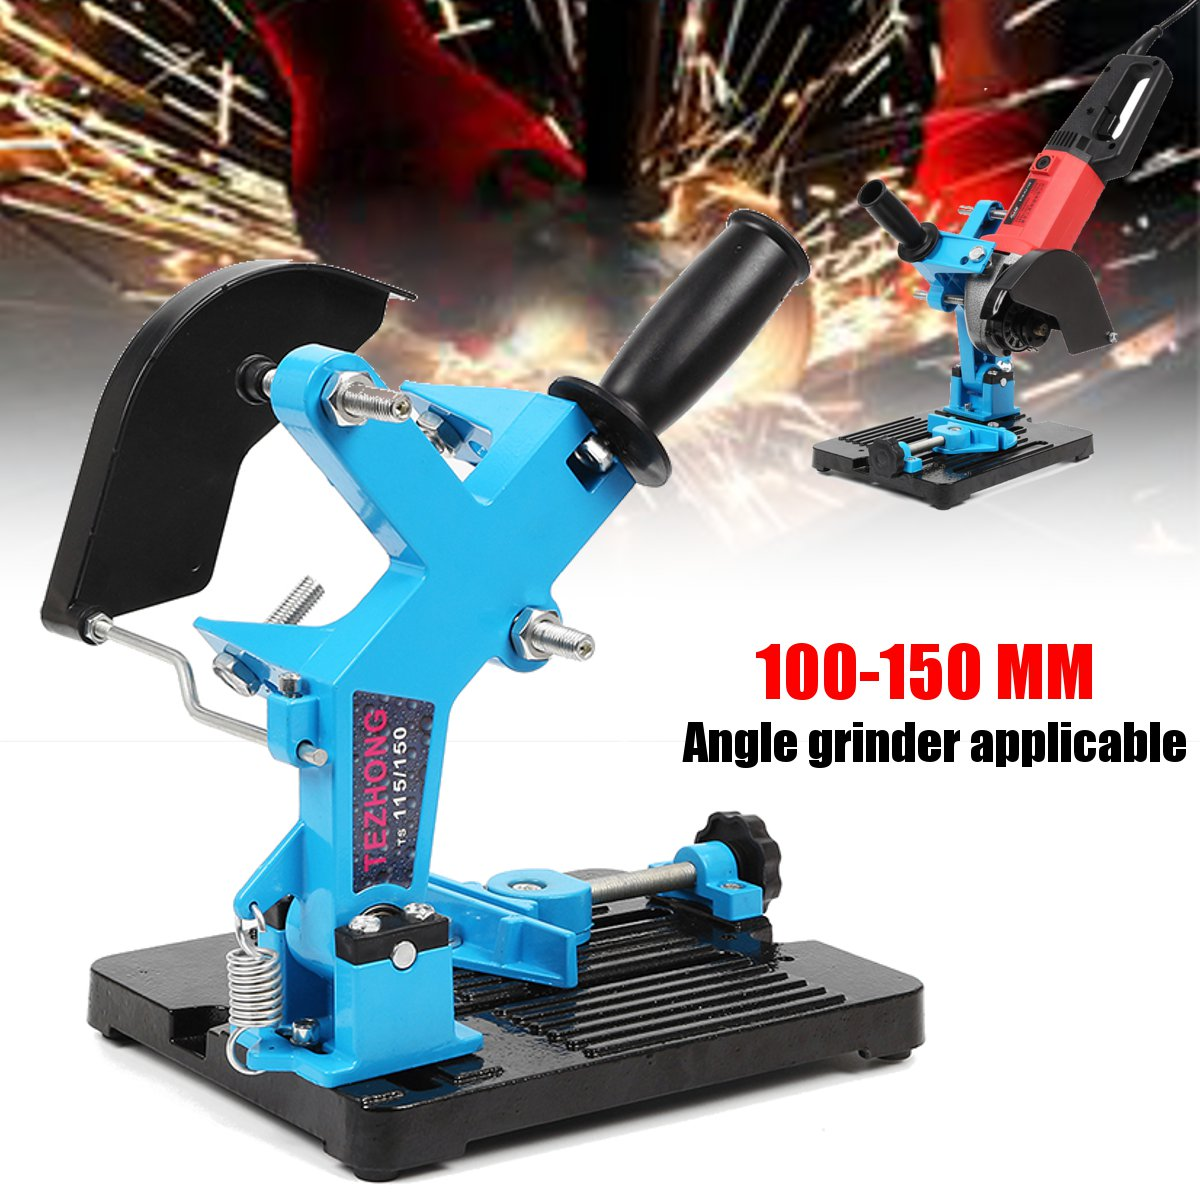 Angle Grinder Stand Double Bearing Bracket for 115-150 Angle Cutter Support Bracket Holder Dock Cast Iron Base Holder 125 angle grinding frame angle grinder holder stand bracket support angle grinder conversion cutter accessories for 115 to 125mm